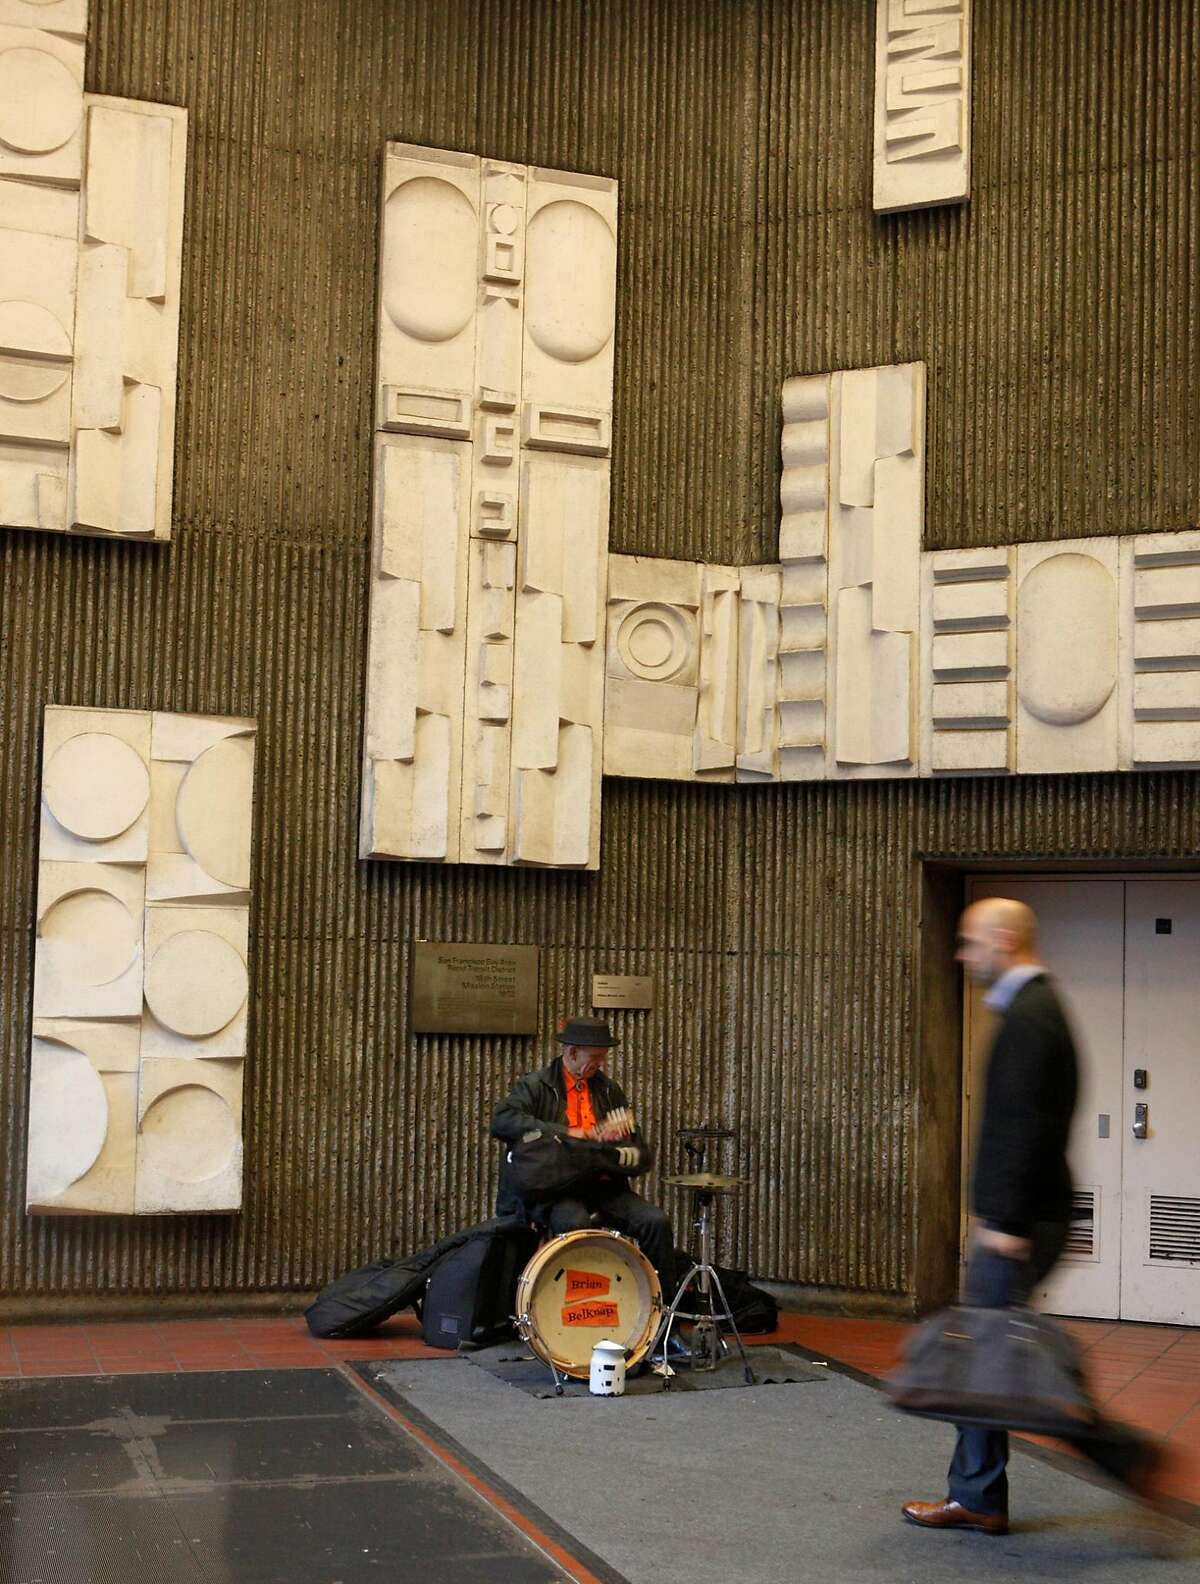 William Mitchell's concrete relief of matte white tiles at the 16th Street BART station, shown here behind musician Brian Belknap in 2015, are an underrated part of the experience at this station.